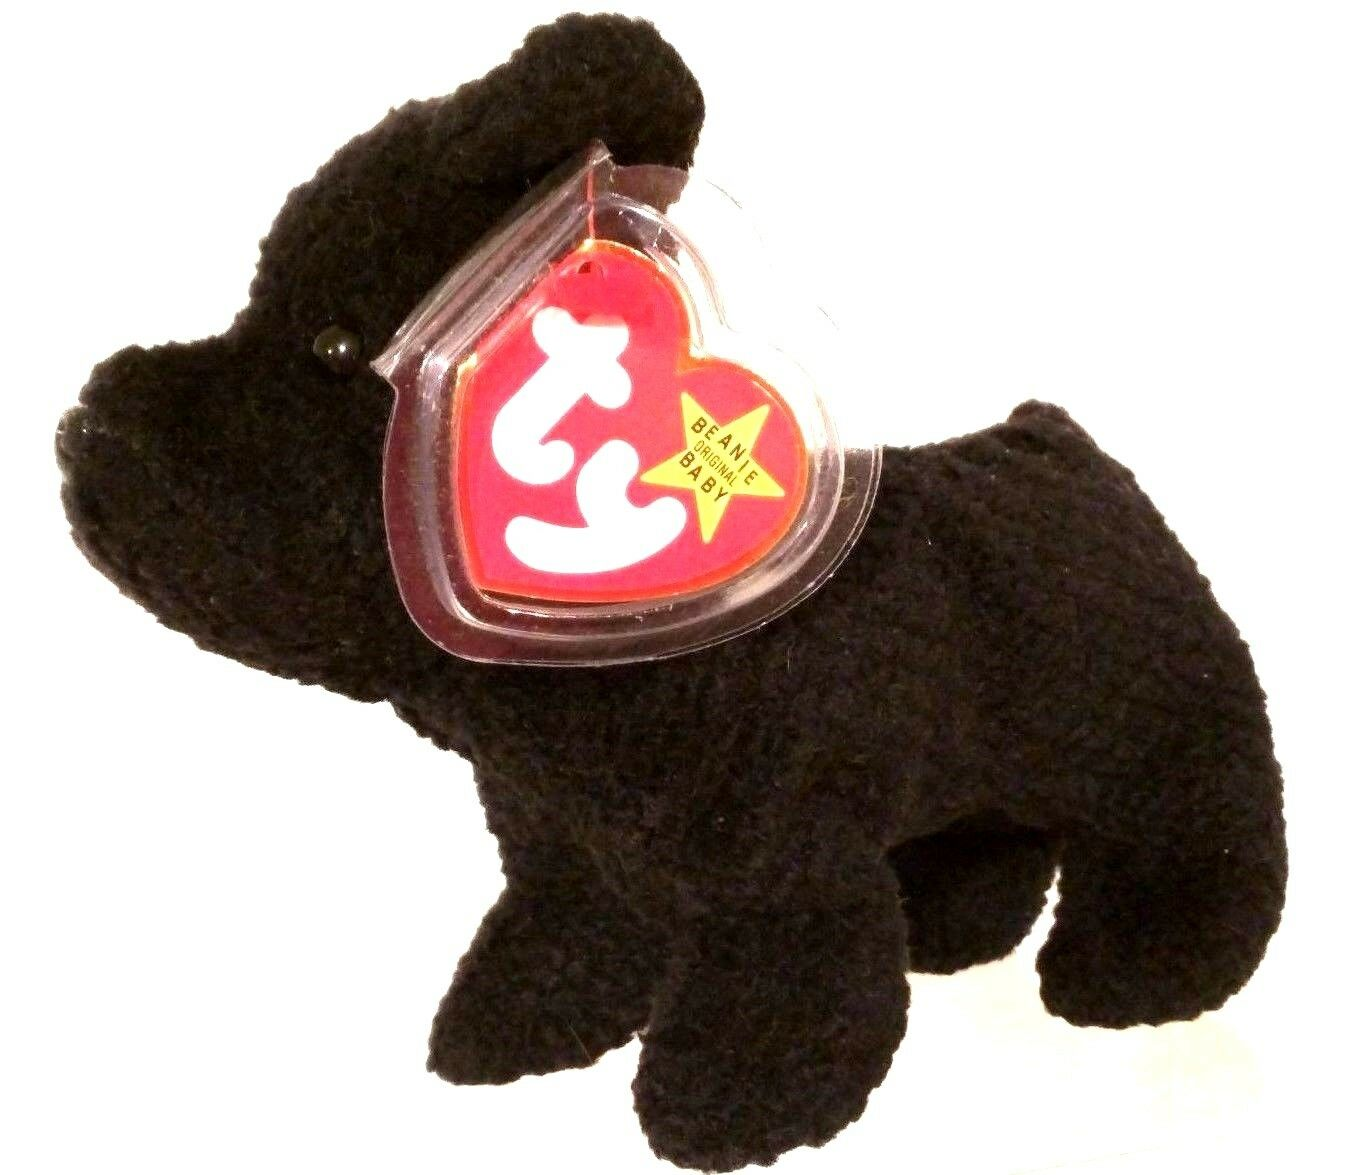 TY TY TY BEANIE BABIES 1996 Scottie the Scottish Terrier with Tag Errors RETIRED MWMT 36d8c3